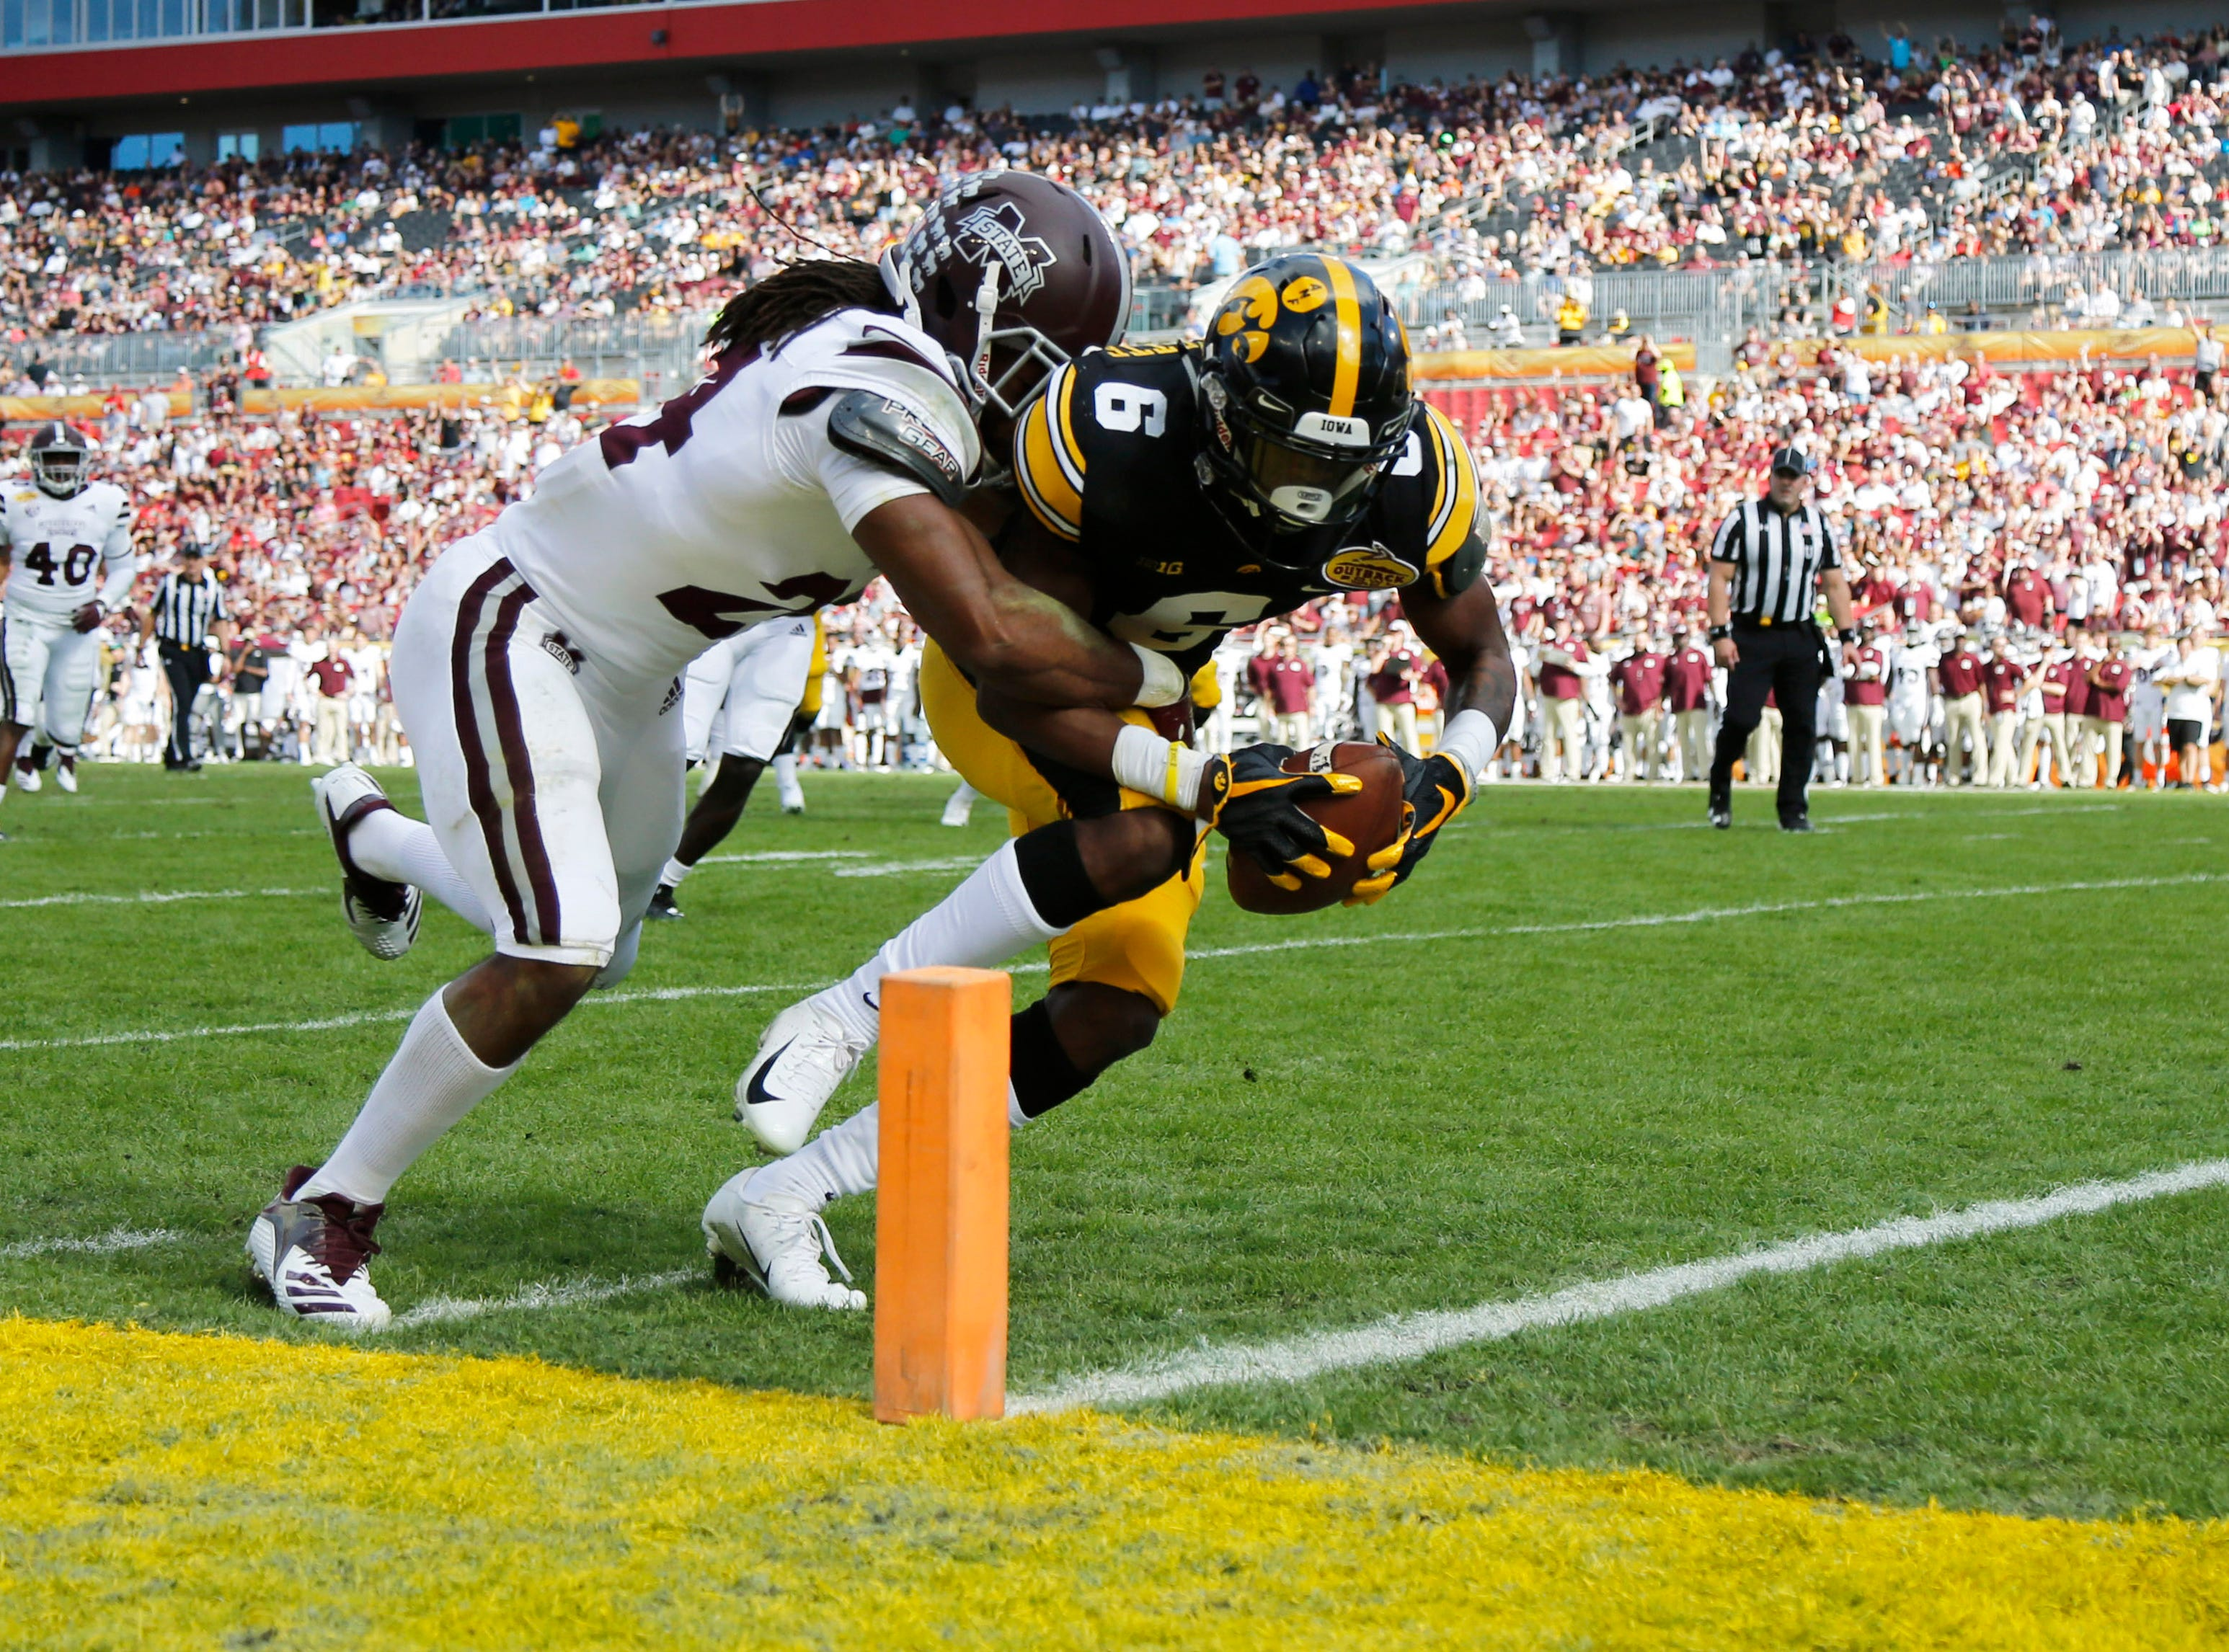 Iowa Hawkeyes wide receiver Ihmir Smith-Marsette (6) scores a touchdown past Mississippi State Bulldogs cornerback Chris Rayford (24) during the second quarter of the Outback Bowl.